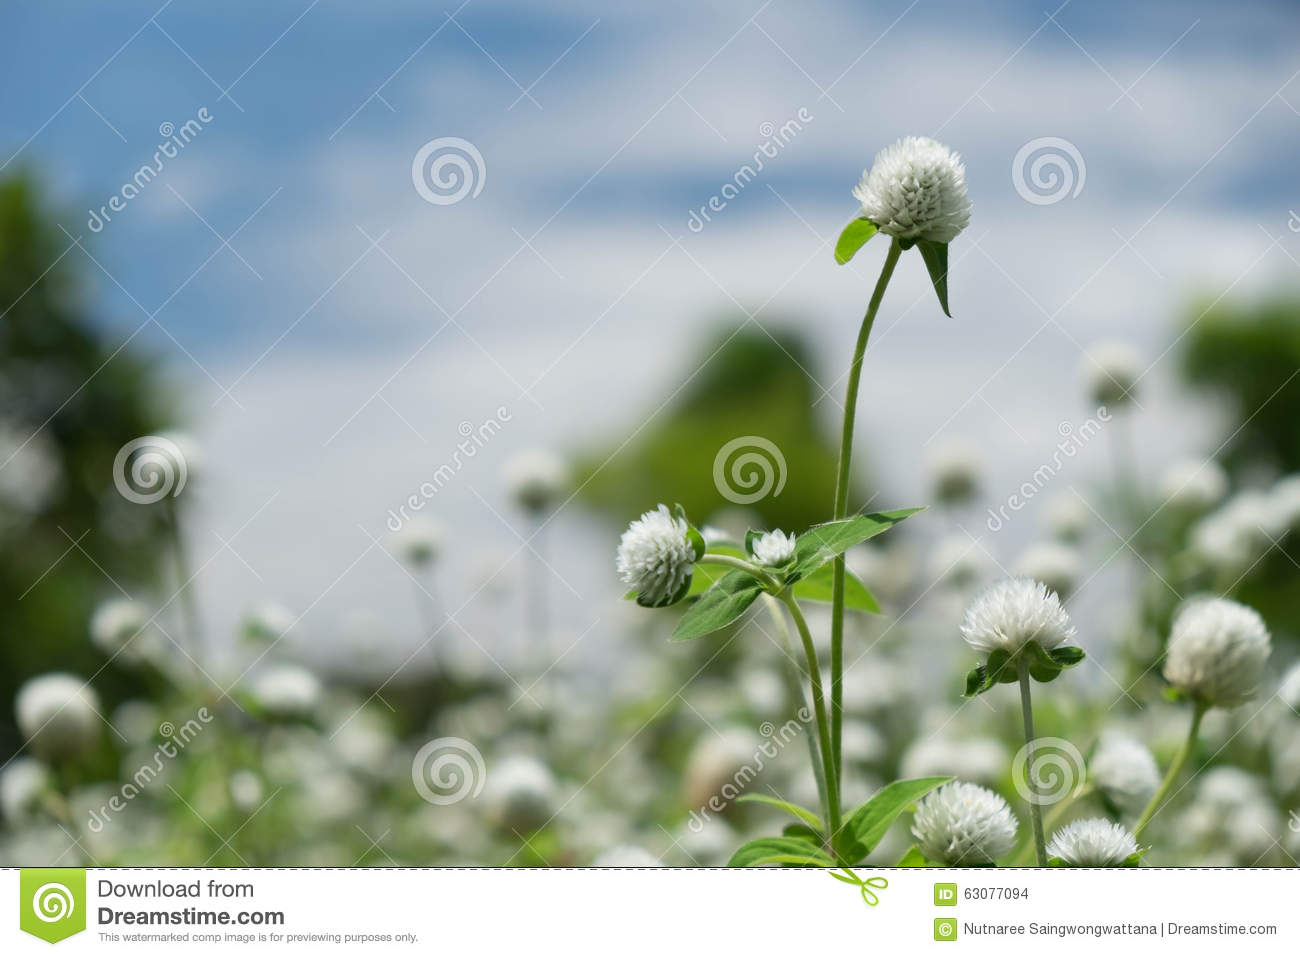 Download Fleur Blanche D'herbe Parmi La Nature Photo stock - Image du fond, journée: 63077094